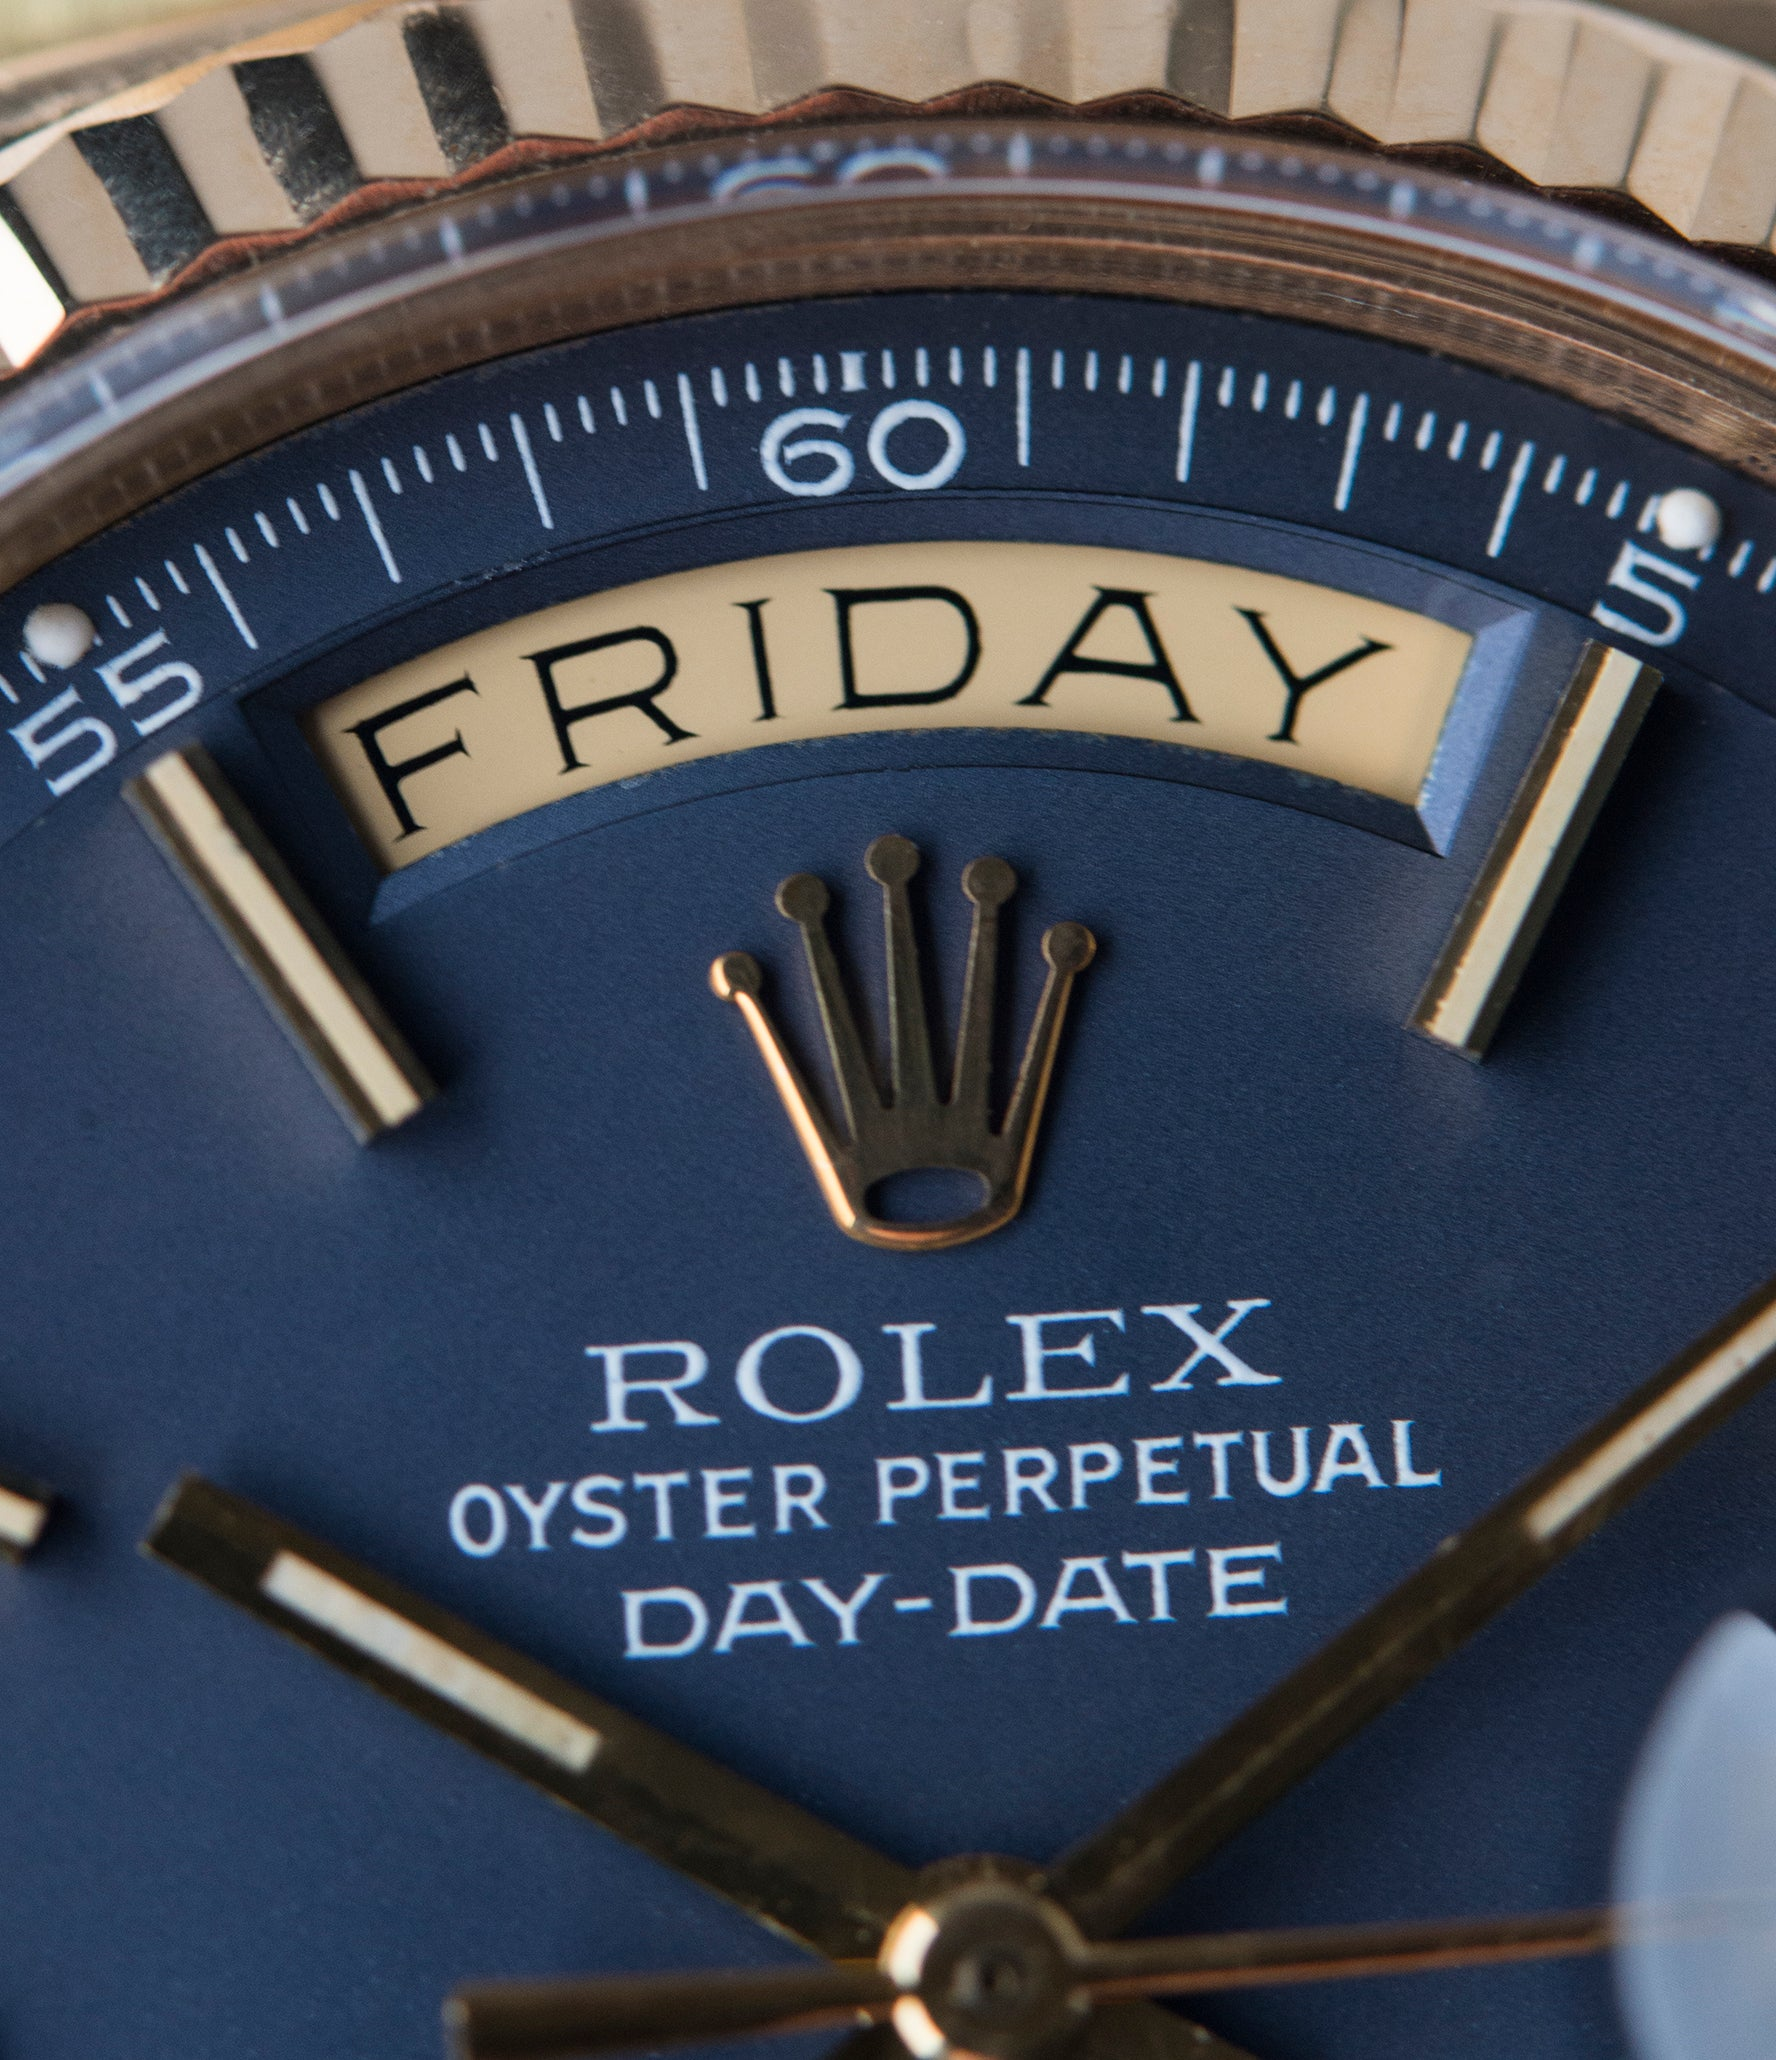 blue dial vintage Rolex Day-Date 1803 Oyster Perpetual Cal. 1556 gold watch for sale online at A Collected Man London UK specialist of rare watches